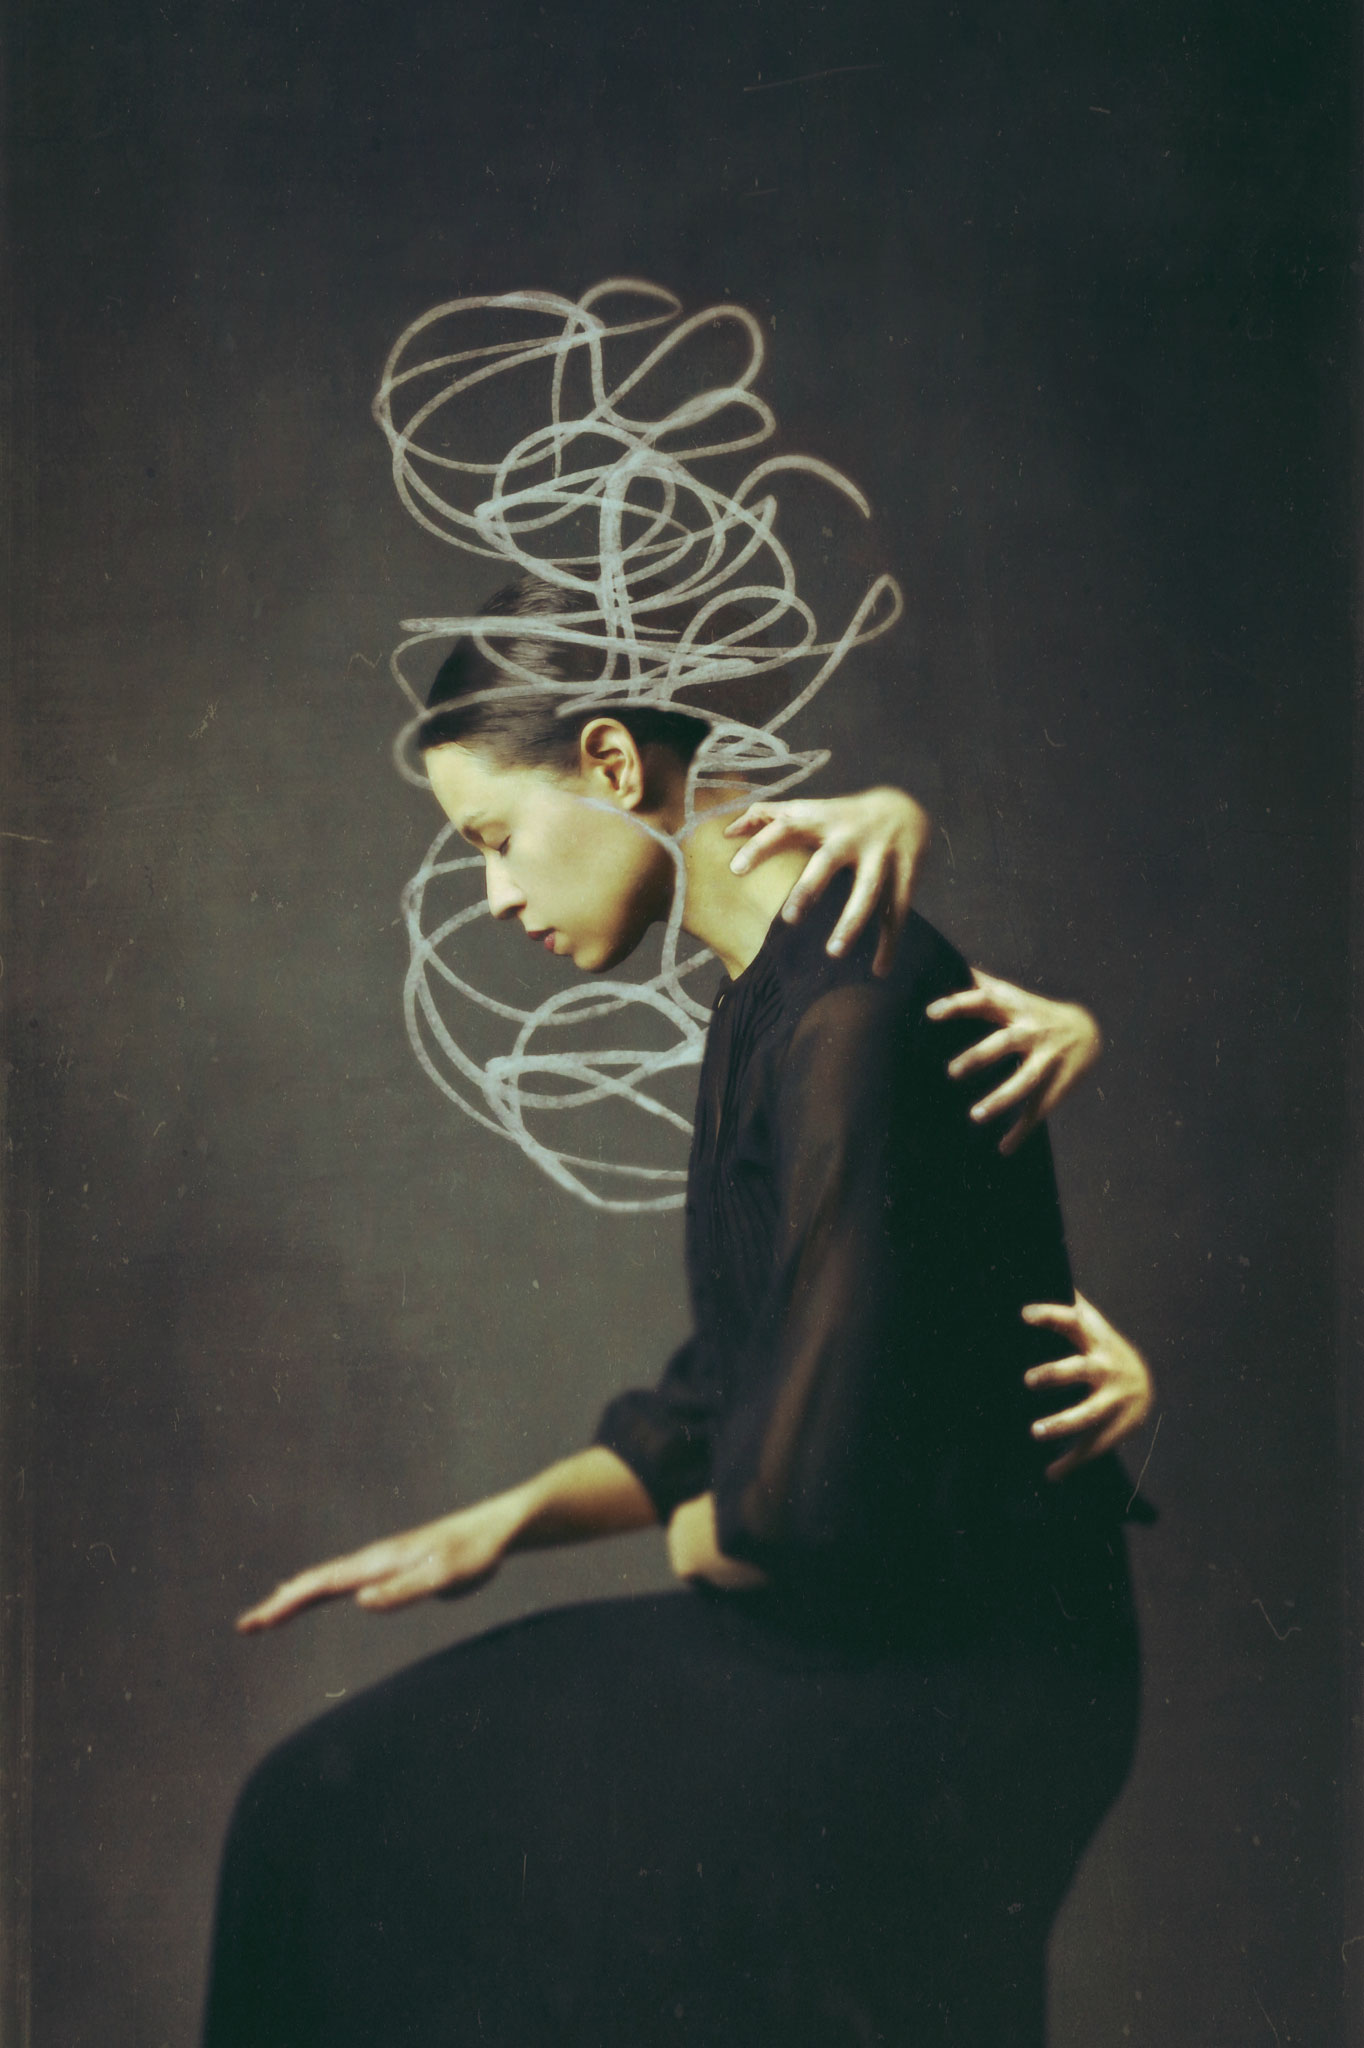 Josephine_Cardin_article_01